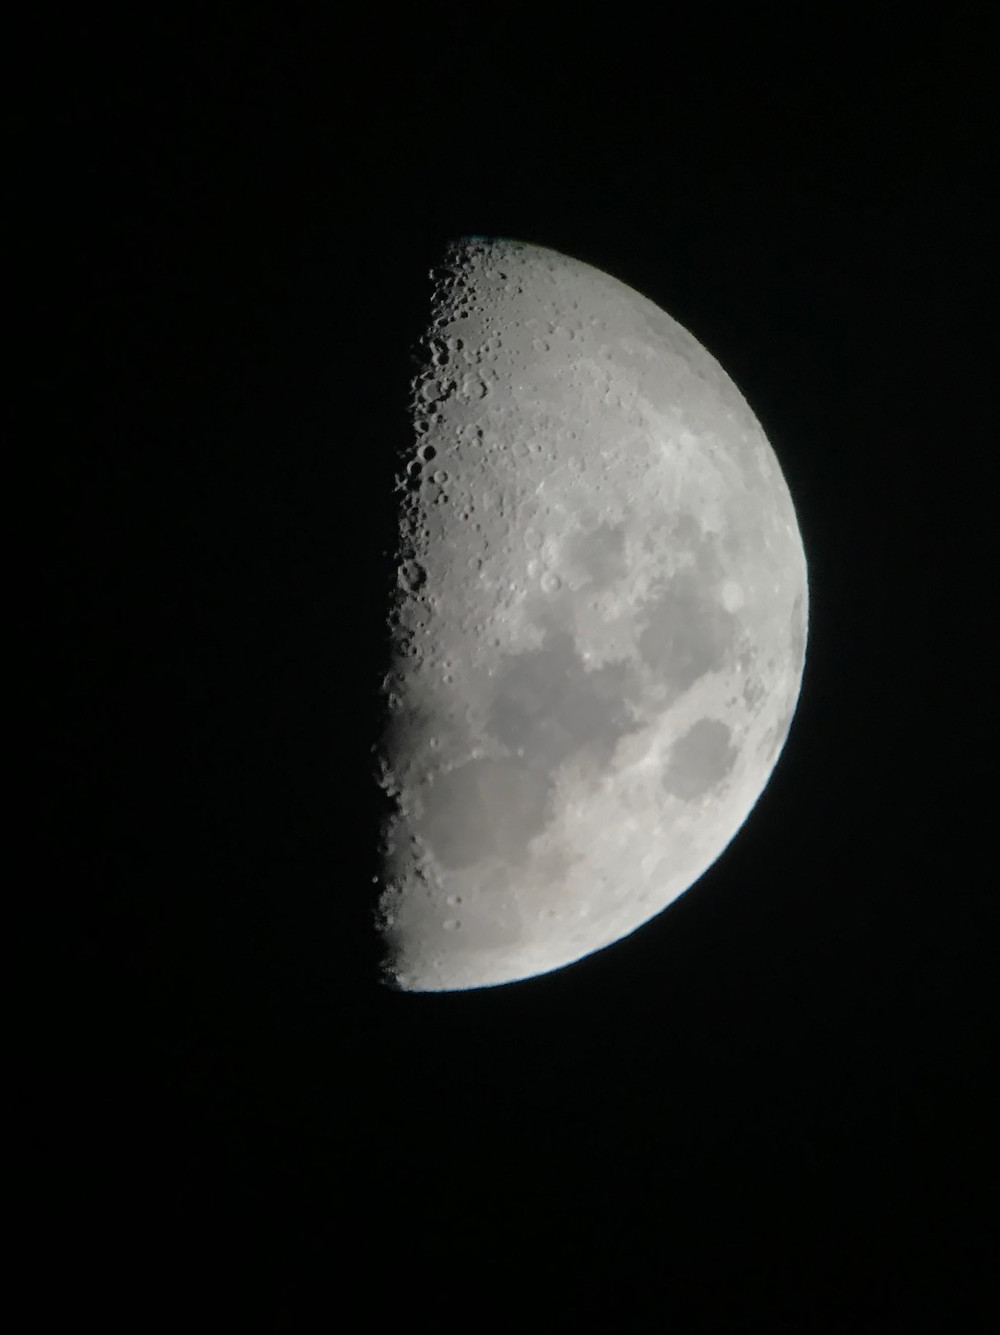 a picture of a half moon, taken by a member of our crew